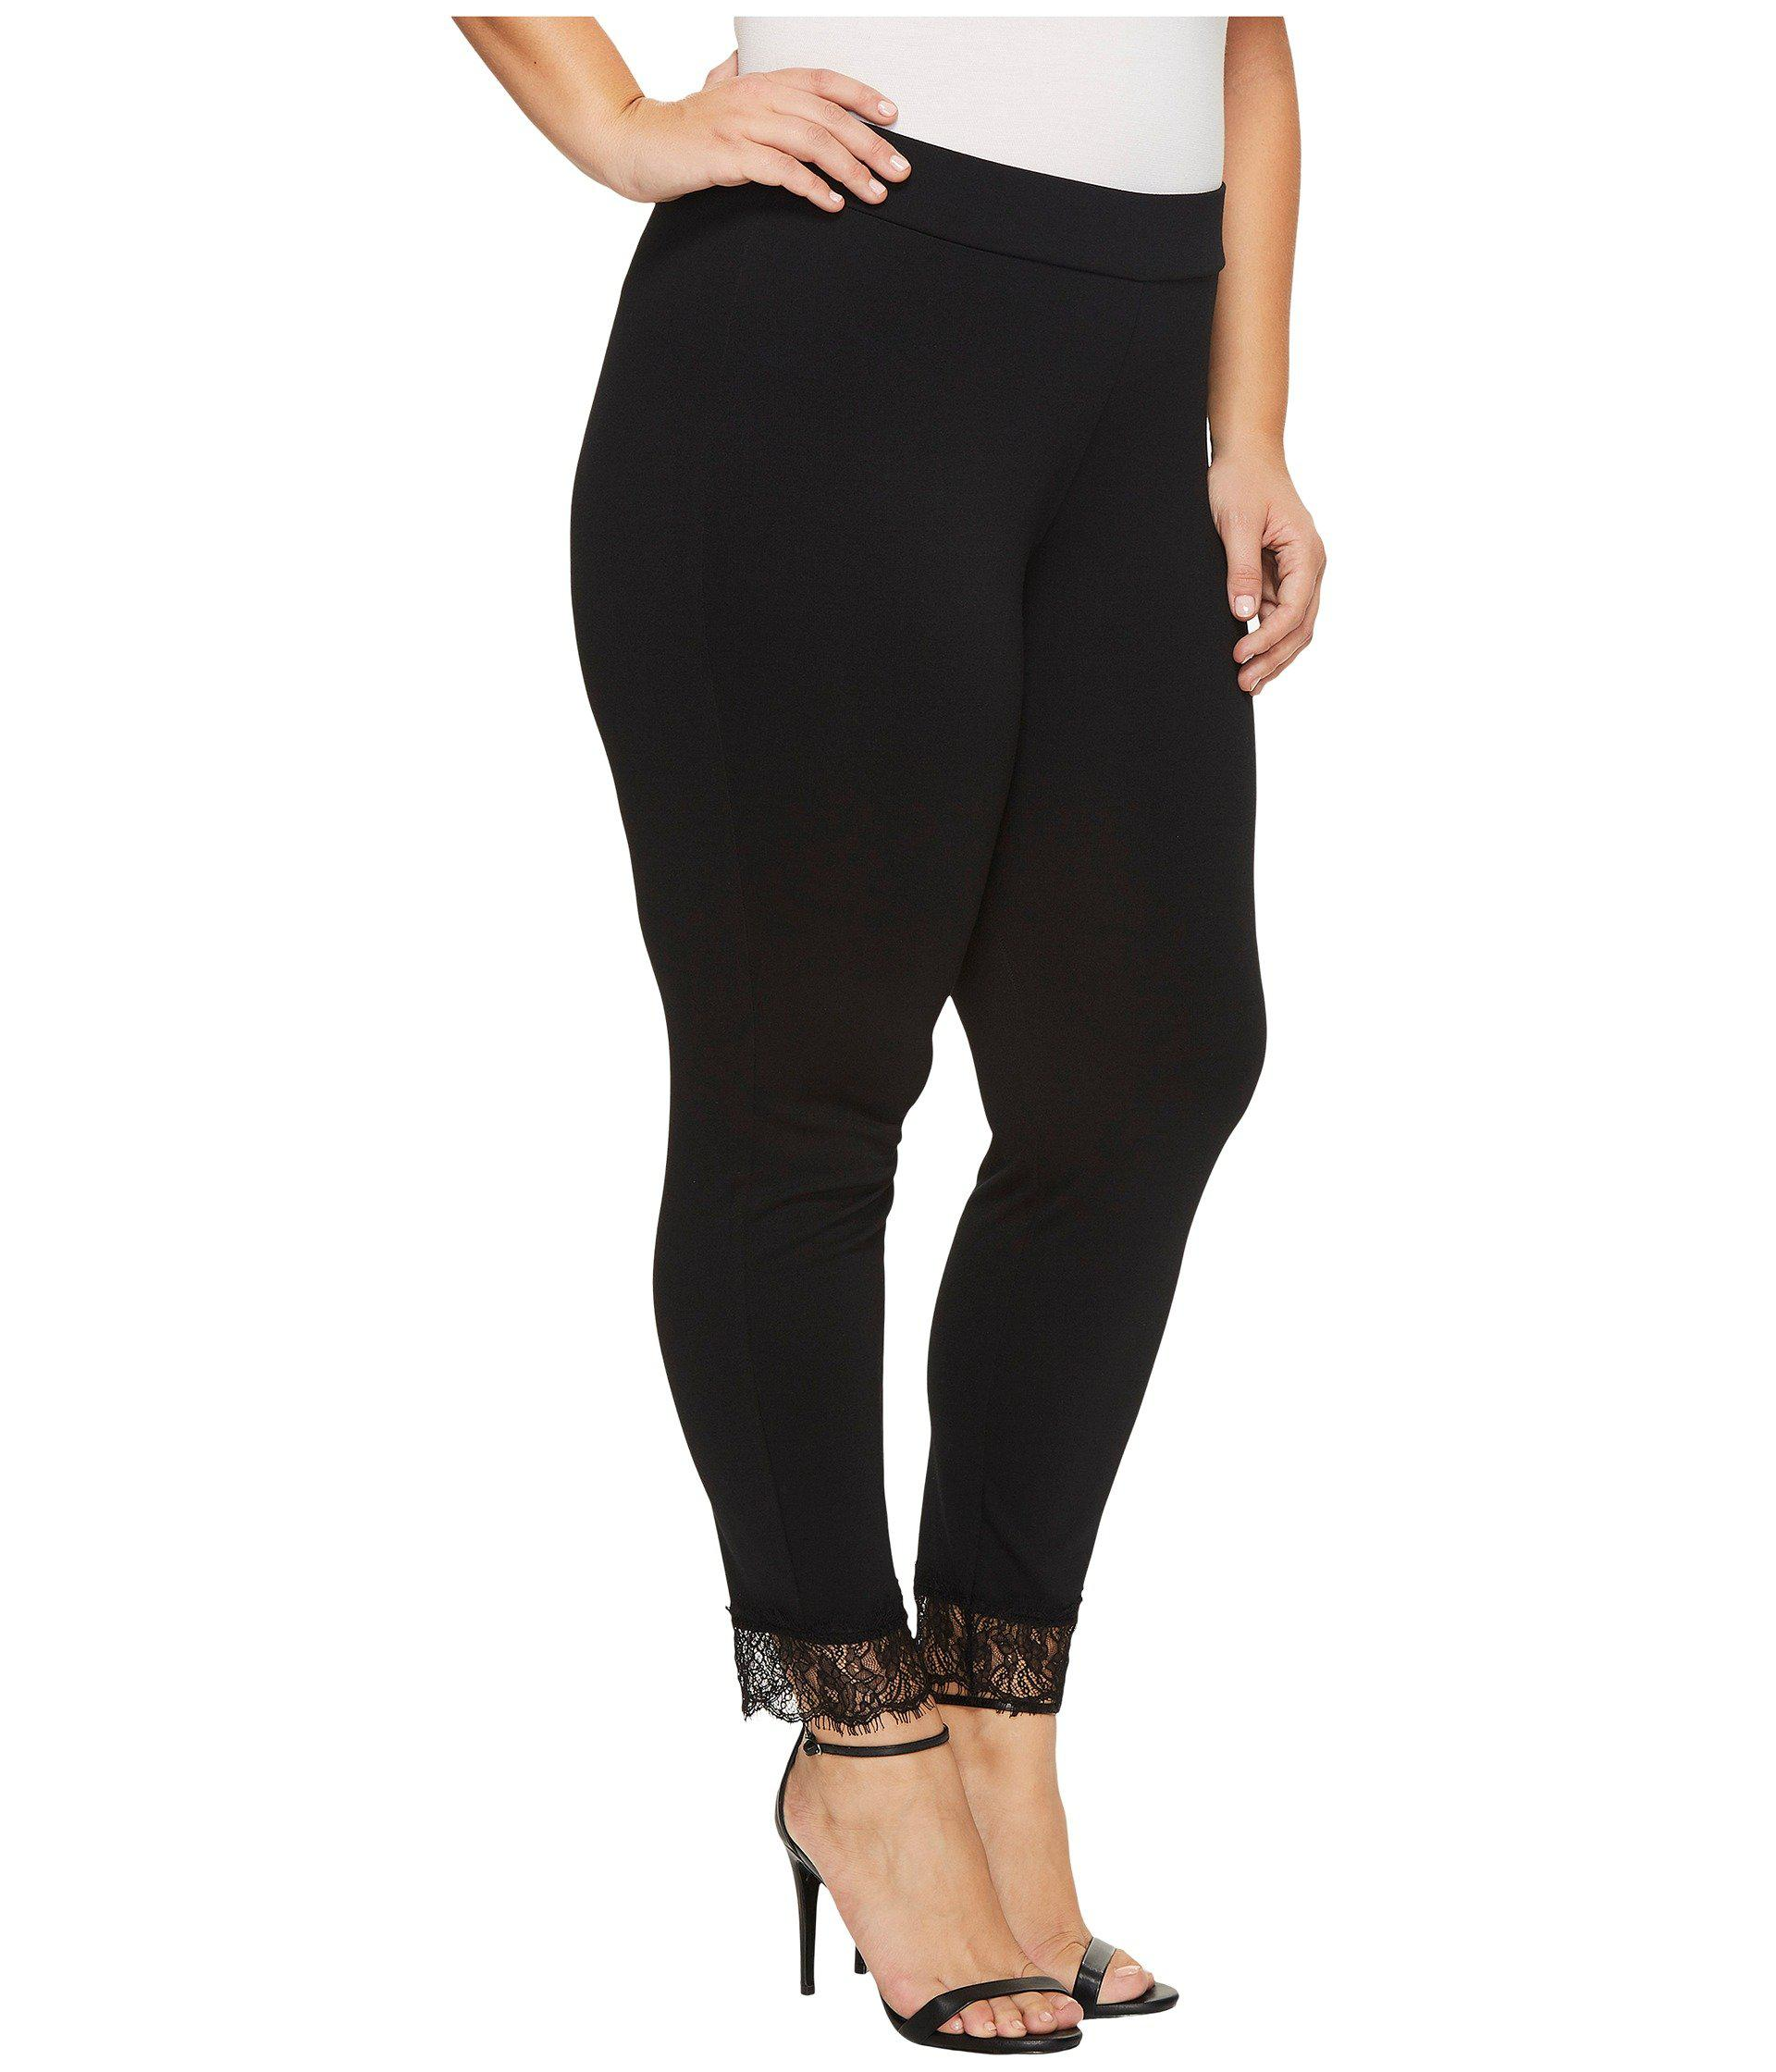 cec86c47788d4 Lyst - MICHAEL Michael Kors Plus Size Lace Cuff Ponte Leggings in Black